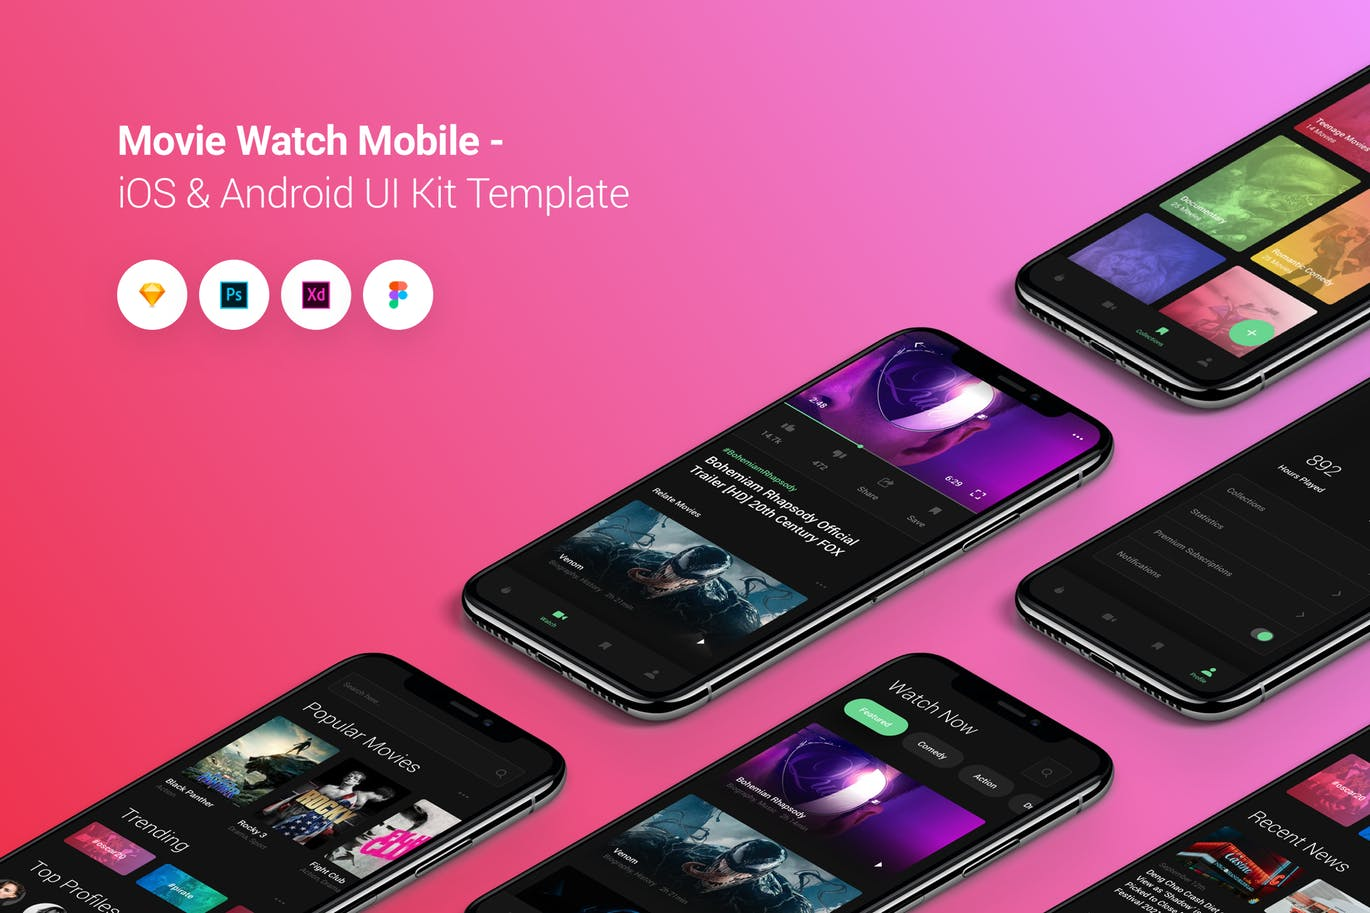 高品质的高端时尚电影移动iOS和Android APP UI KITS设计模板 Movie Watch Mobile iOS & Android UI Kit Template by PanoplyStore